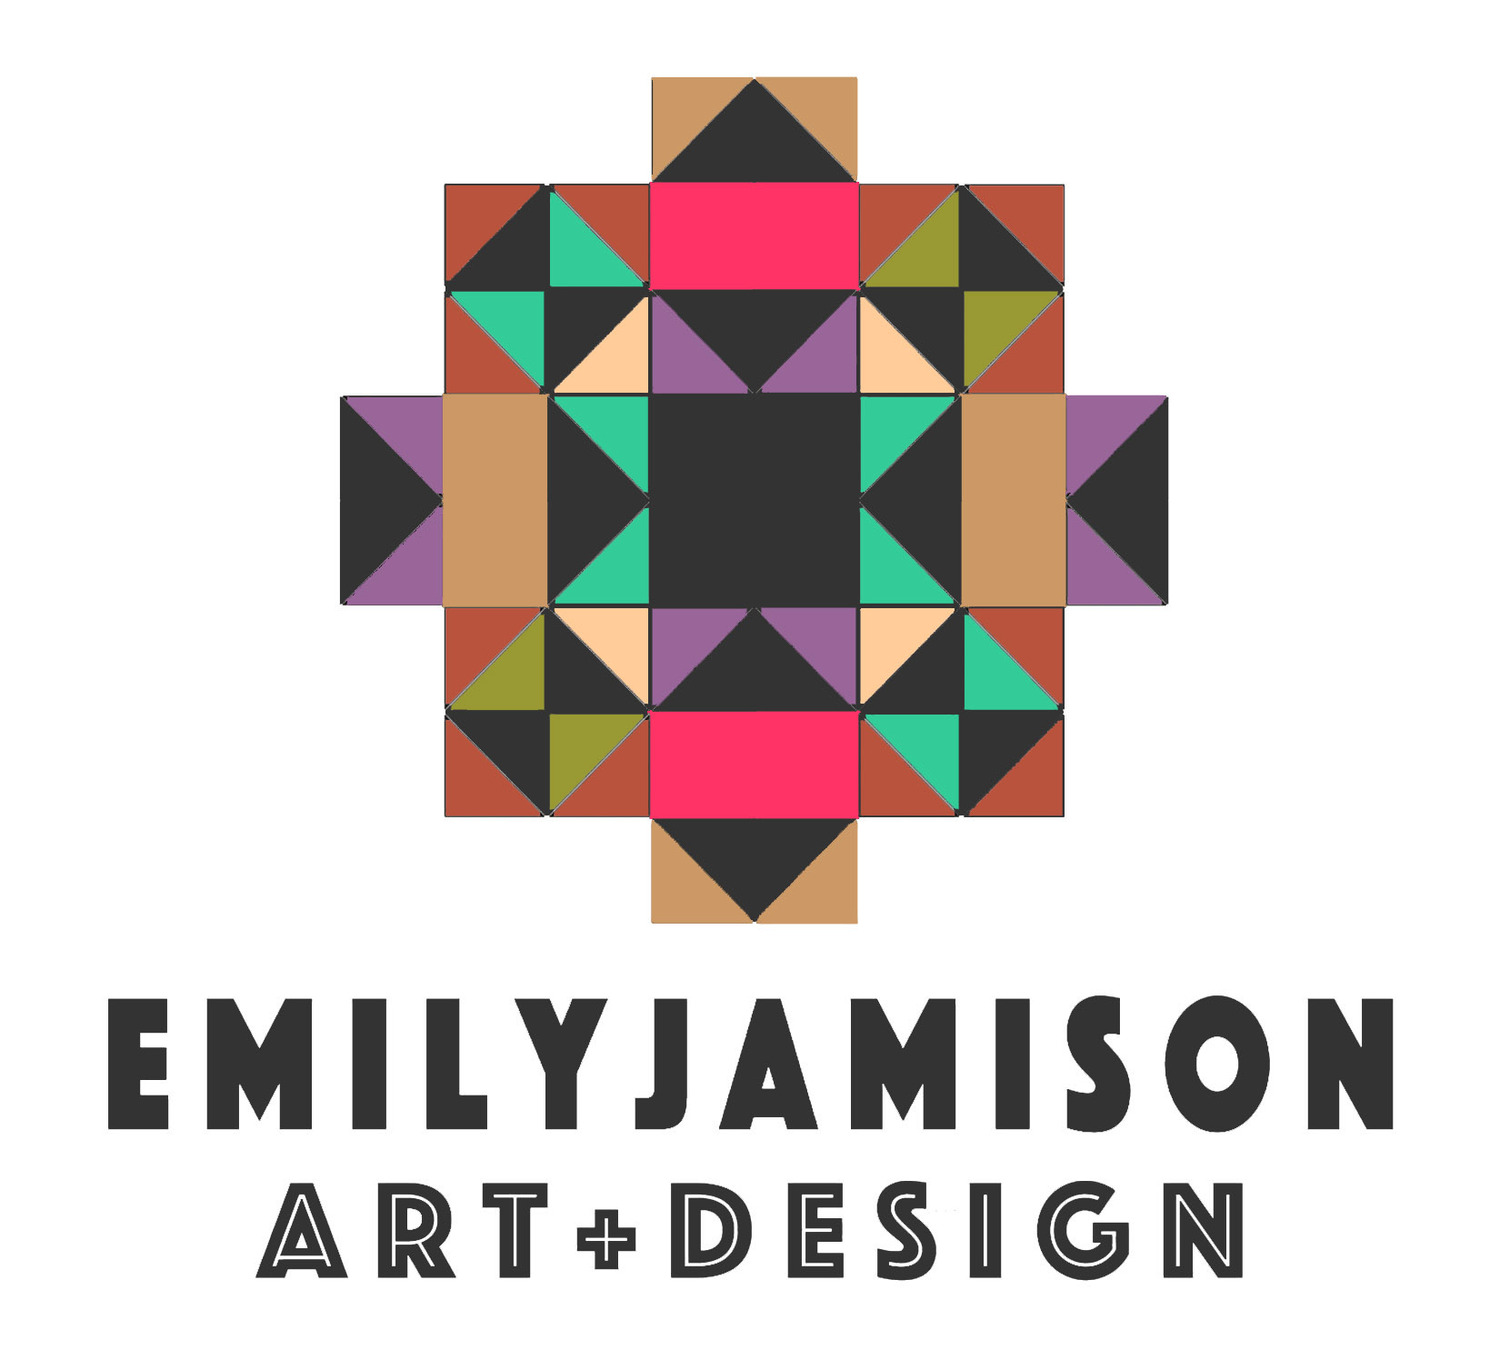 EMILY JAMISON Art + Design